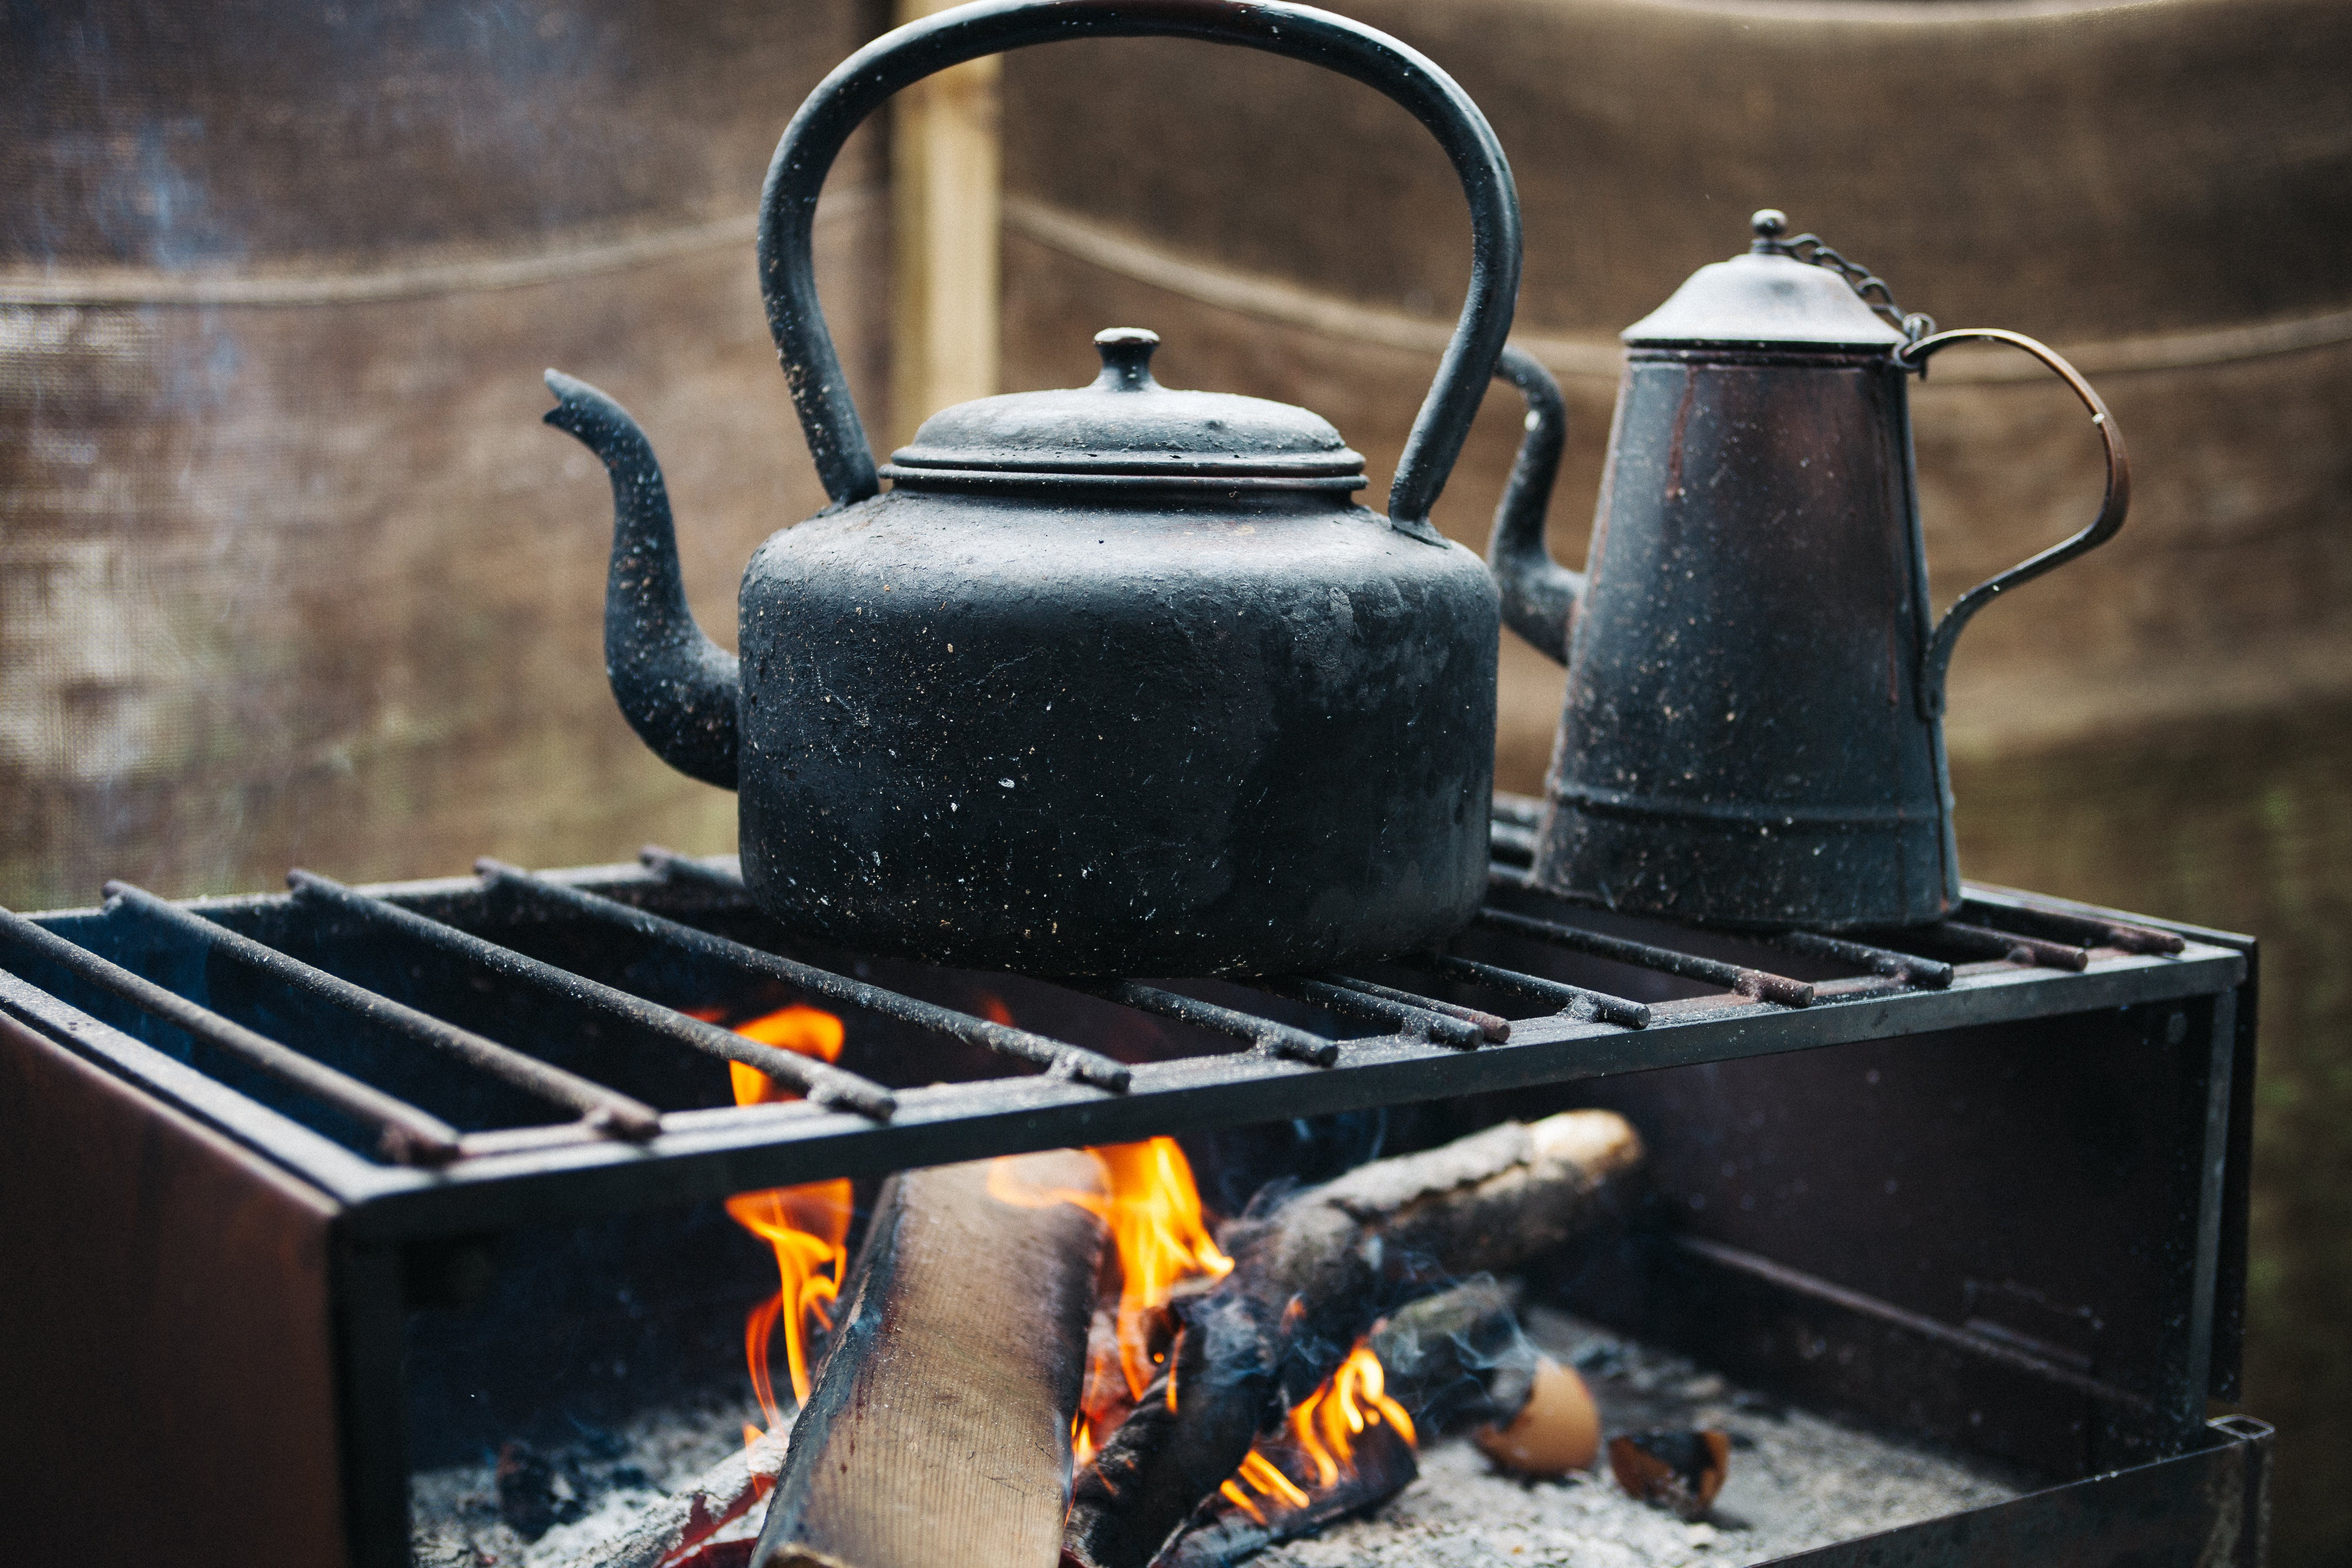 Black Kettle on Grill